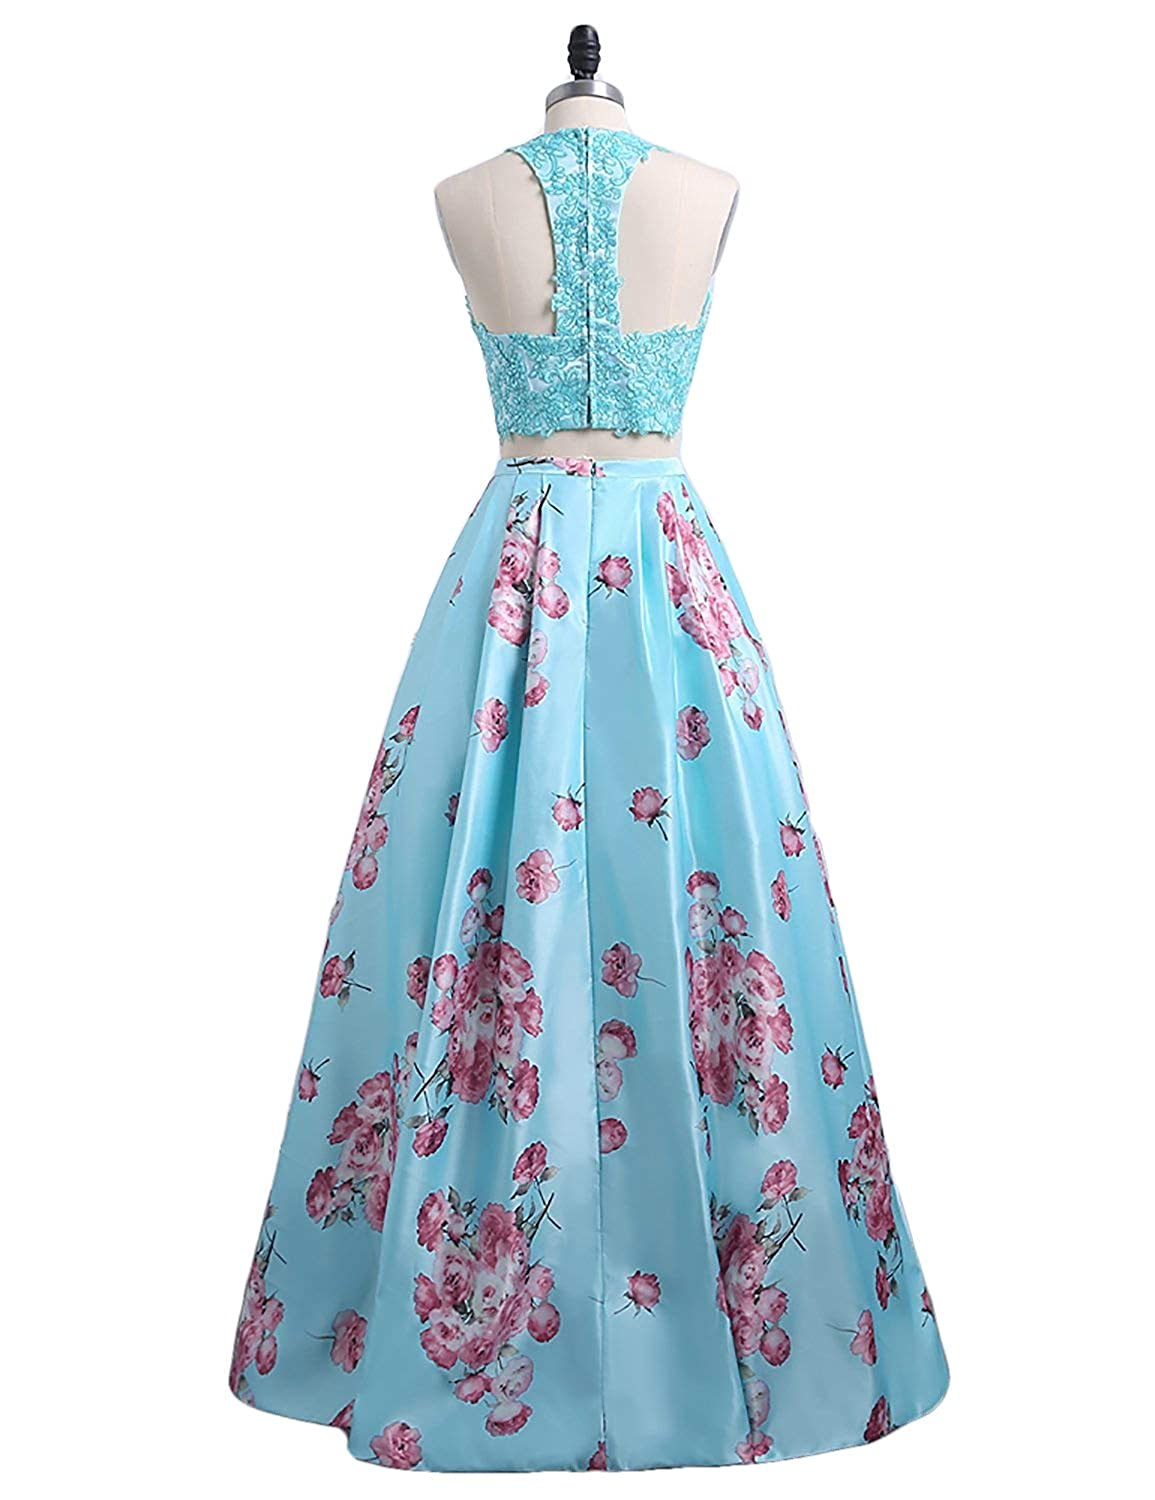 431d743c6c Yiweir Women s Prom Dresses 2018 Long Two Piece Halter Print Flowers Satin  Lace Formal Gown P158 at Amazon Women s Clothing store